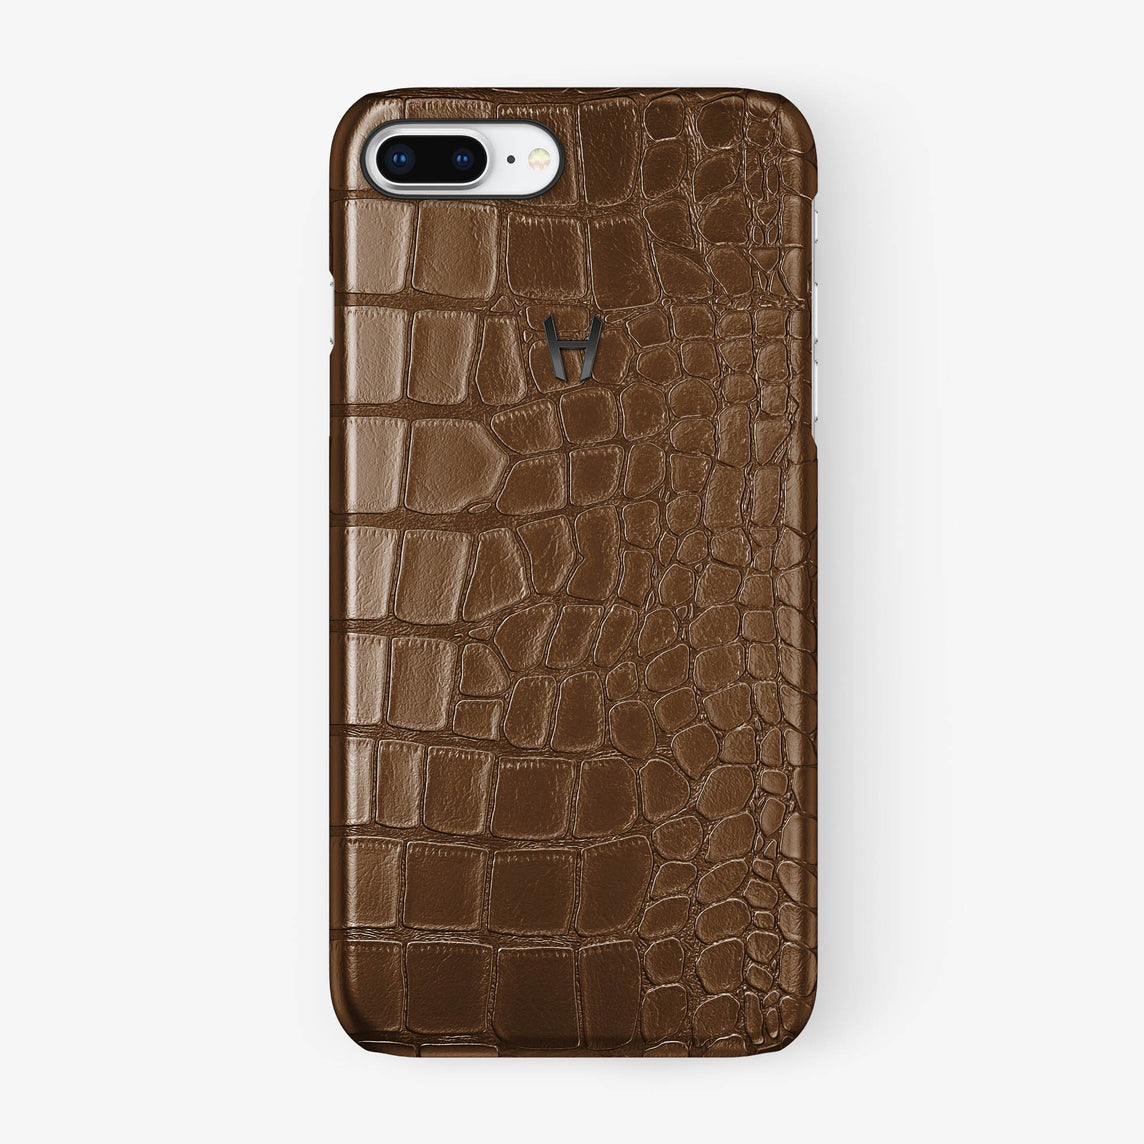 Alligator [iPhone Case] [model:iphone-7p-8p-case] [colour:brown] [finishing:black] - Hadoro